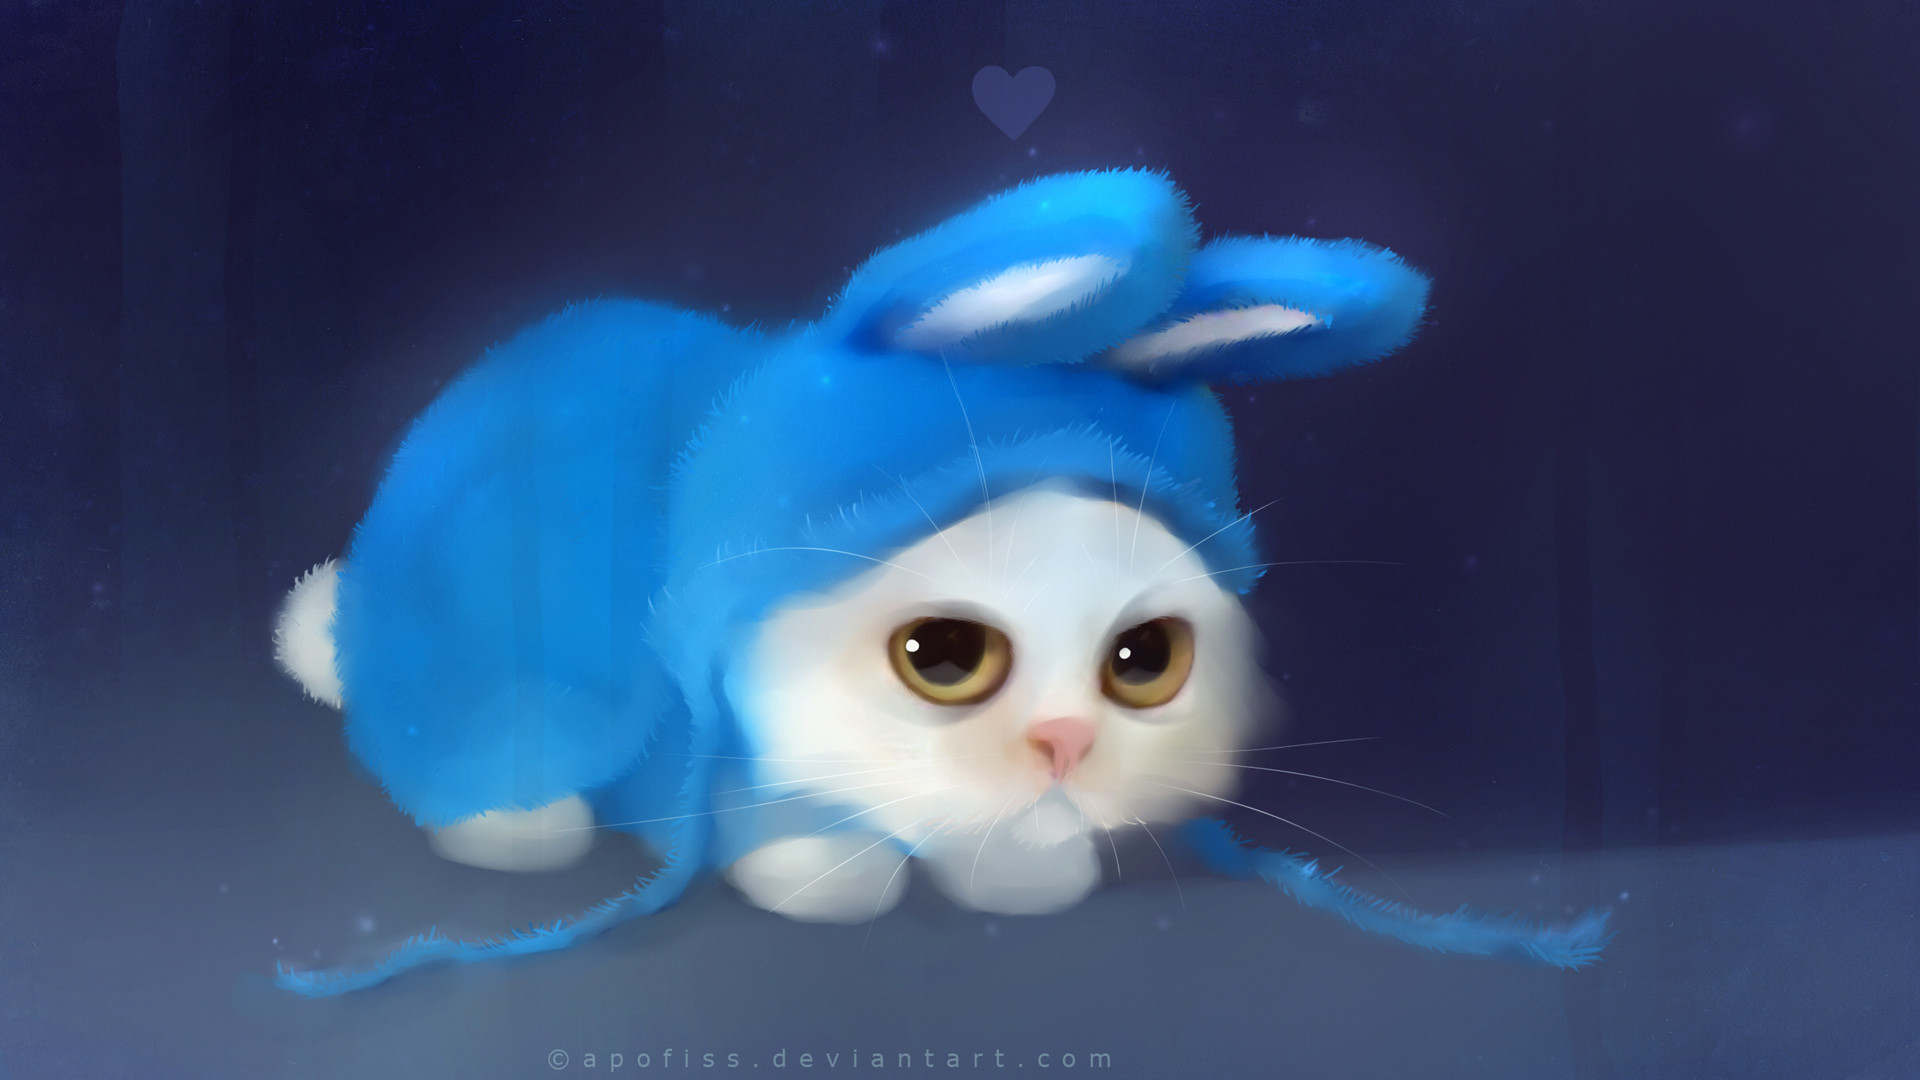 Cute Bunny Wallpapers   HD Wallpapers